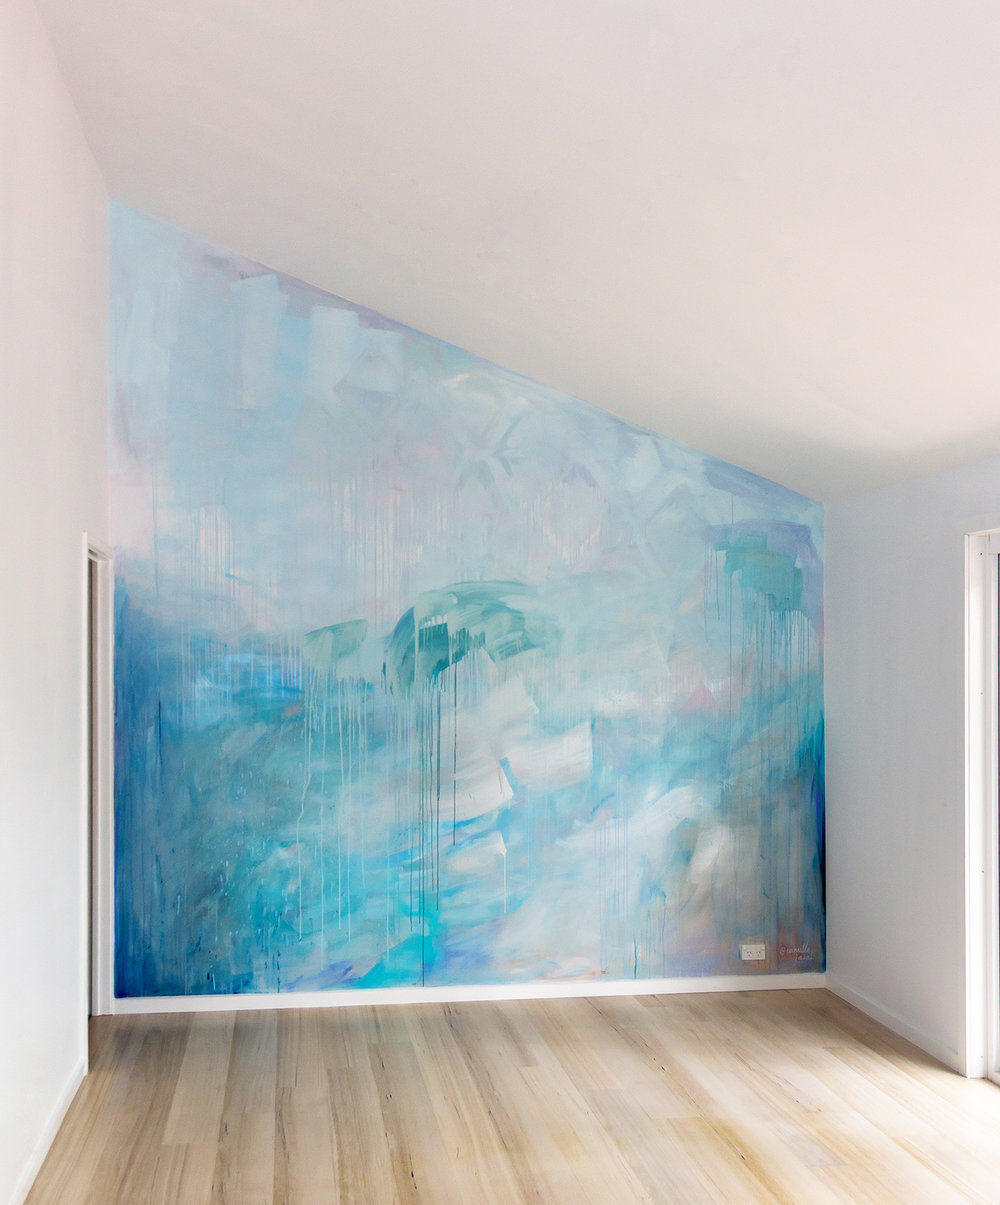 Ocean water painted contemporary abstract mural in pastel blue, green and metallic paint, featuring a wave, drips and geometric shapes, the artwork has movement and reflects light.